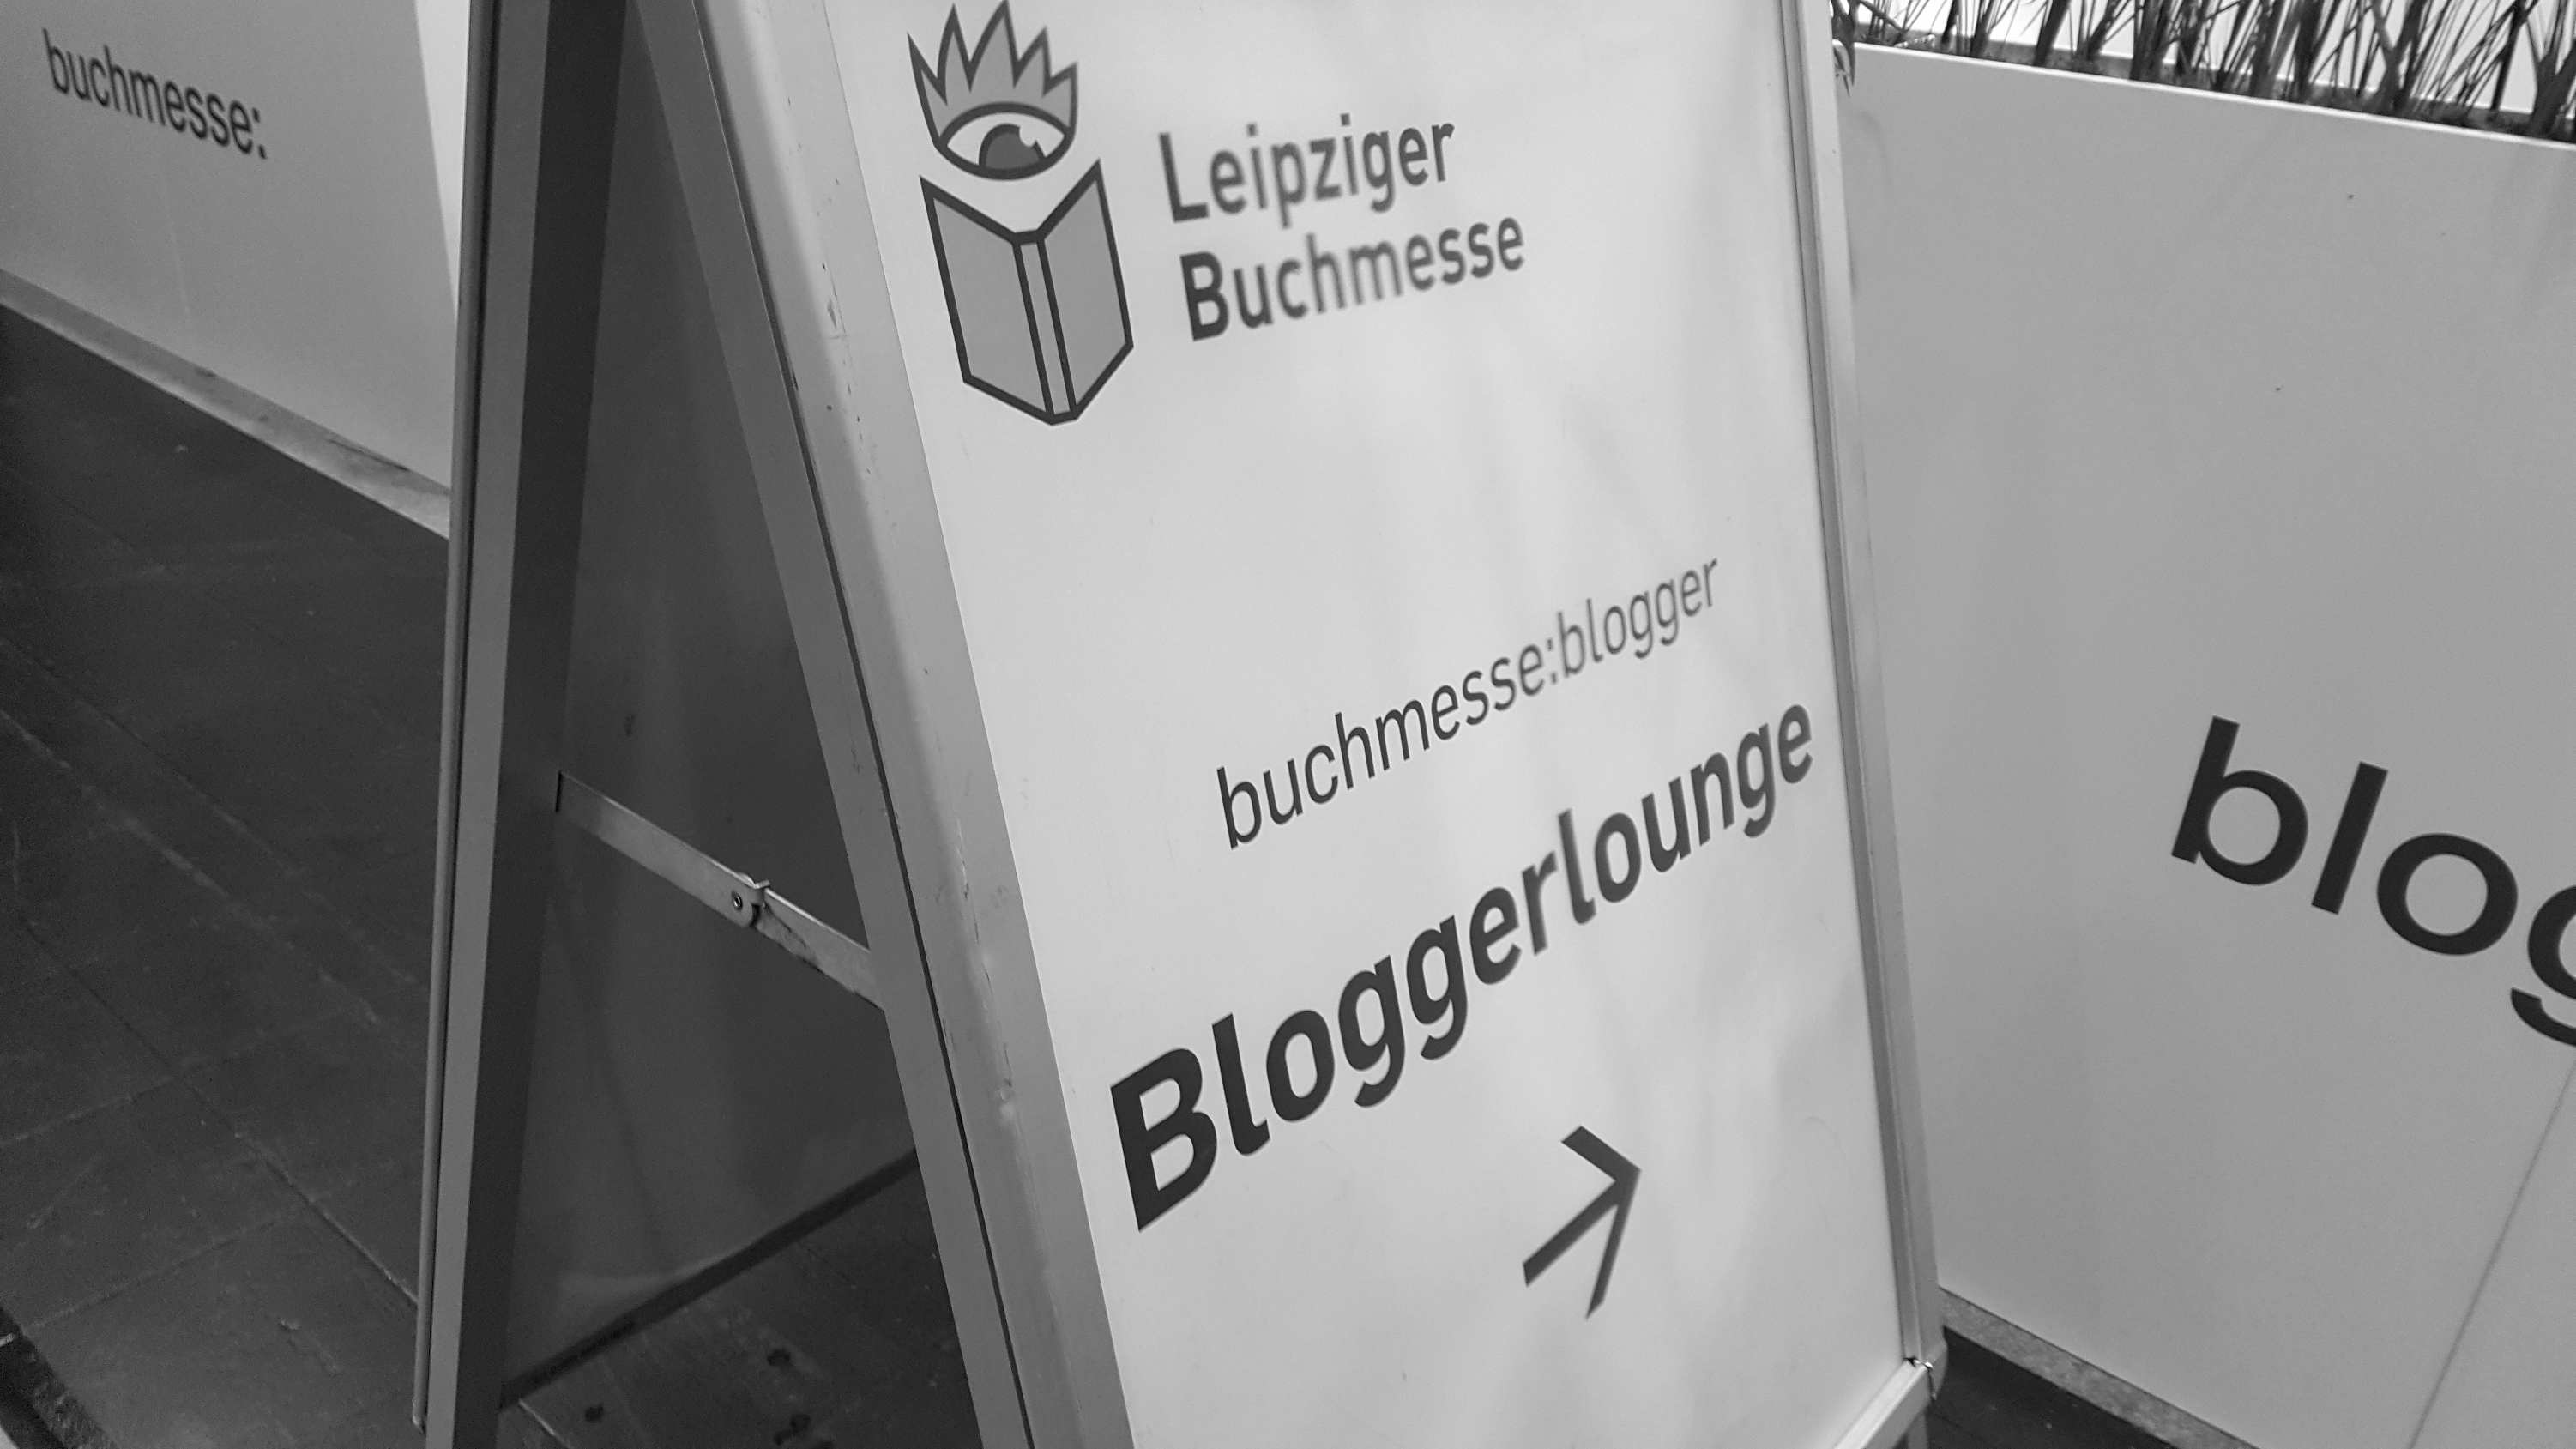 [On Tour] Leipziger Buchmesse 2017